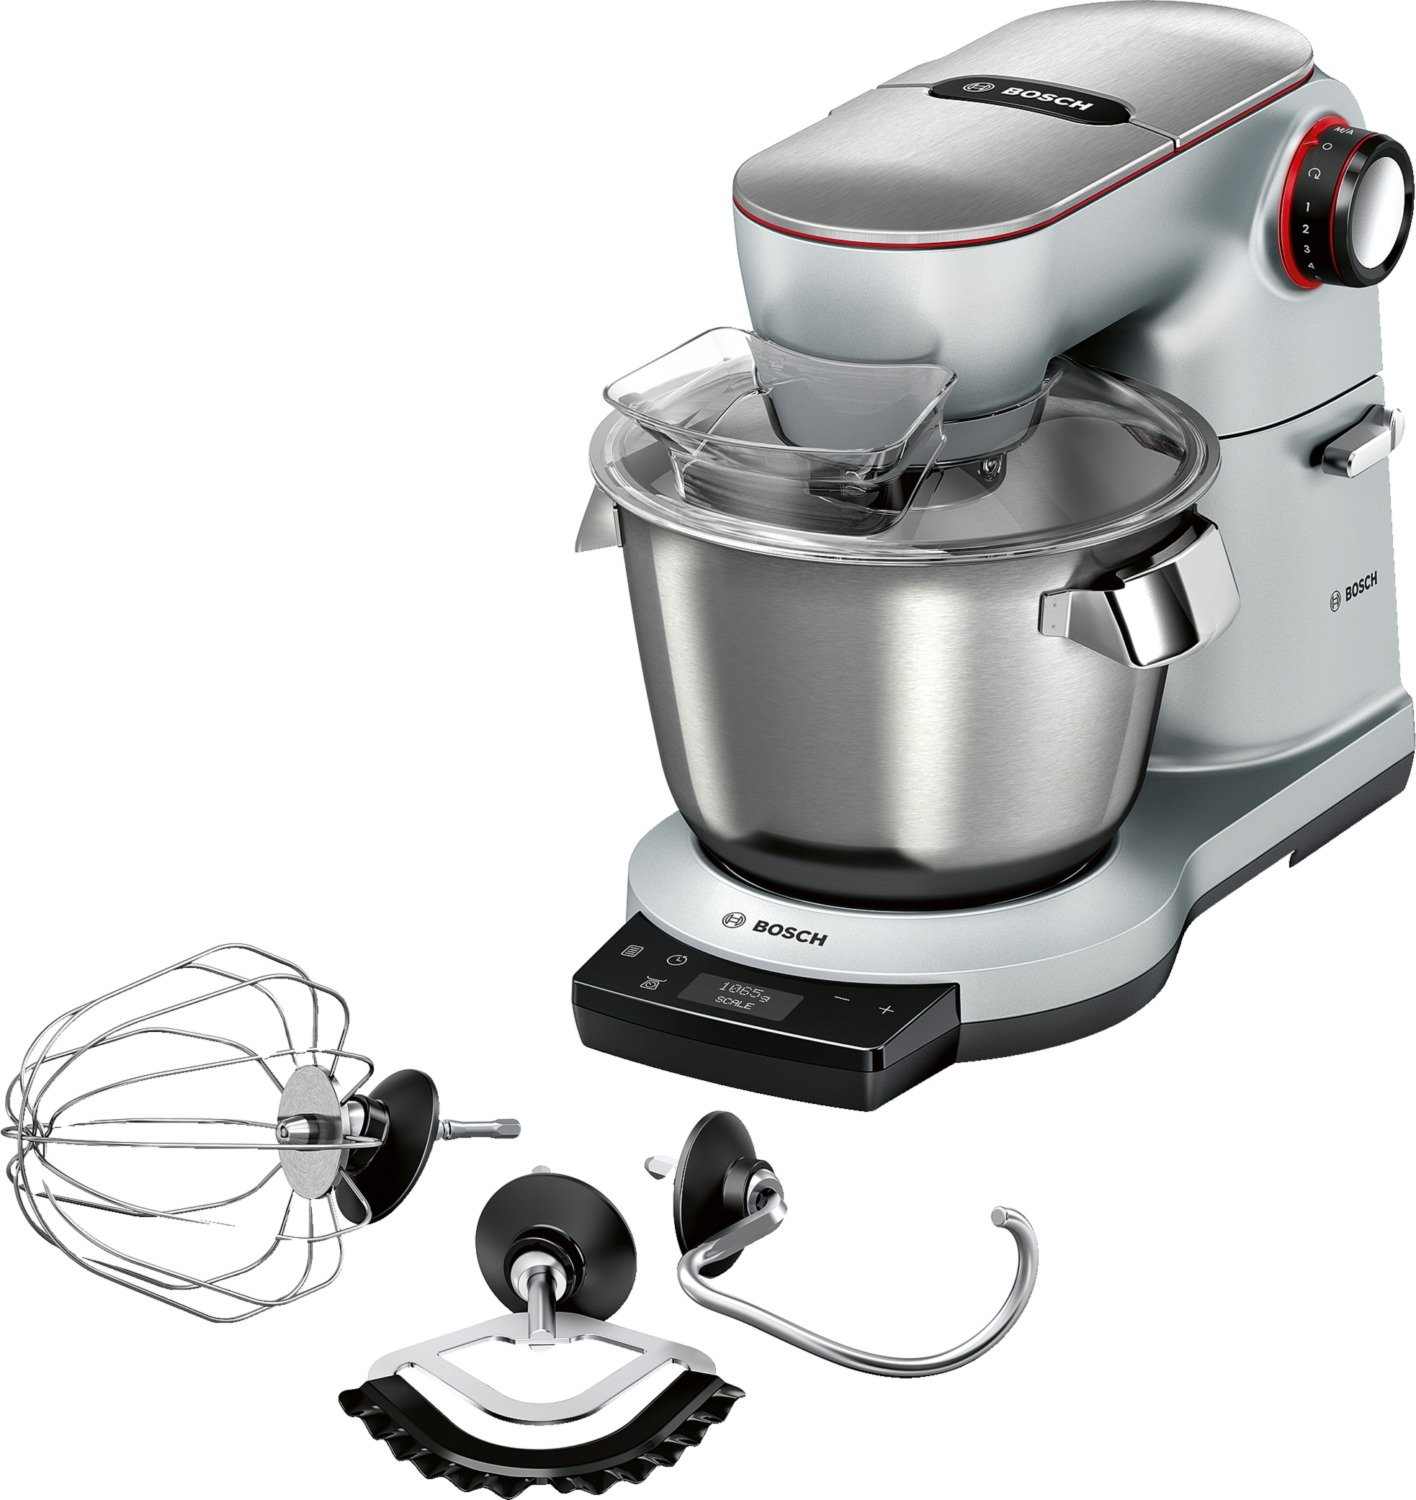 Bosch MUM9AX5S00 - Batidora (Acero inoxidable, Metal, Acero inoxidable, 50/60 Hz): Amazon.es: Hogar